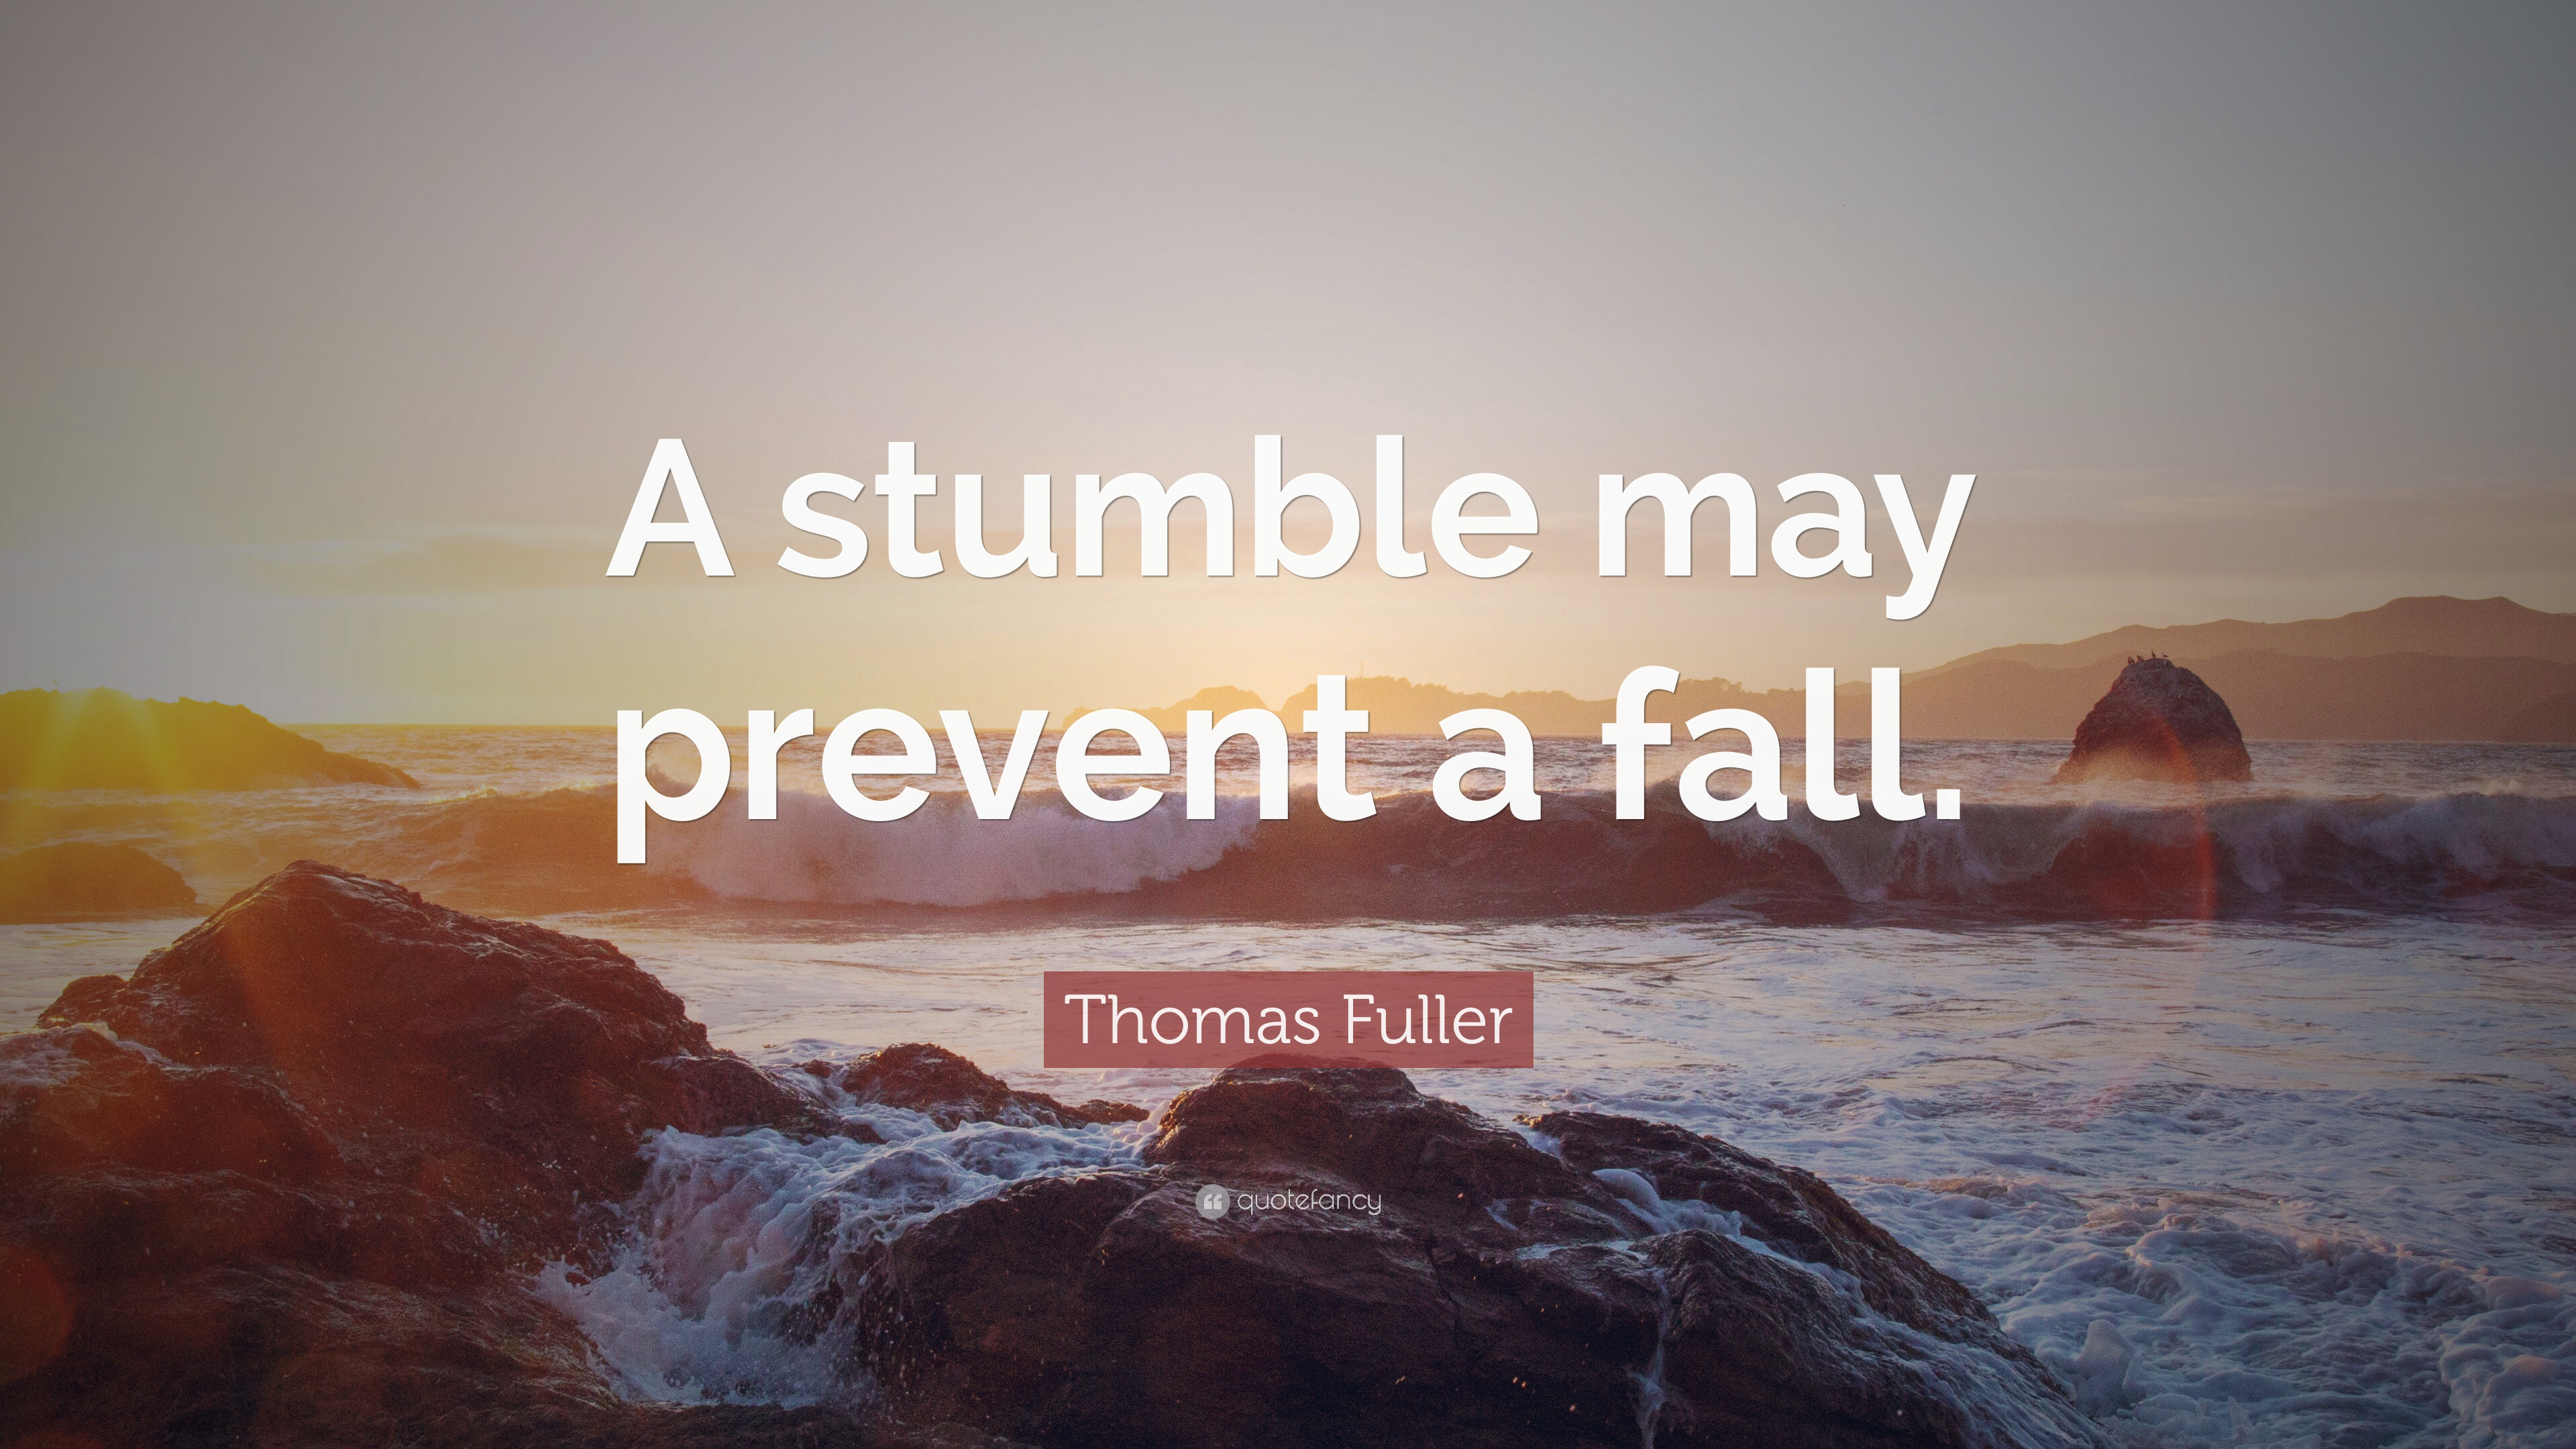 A stumble may prevent a fall